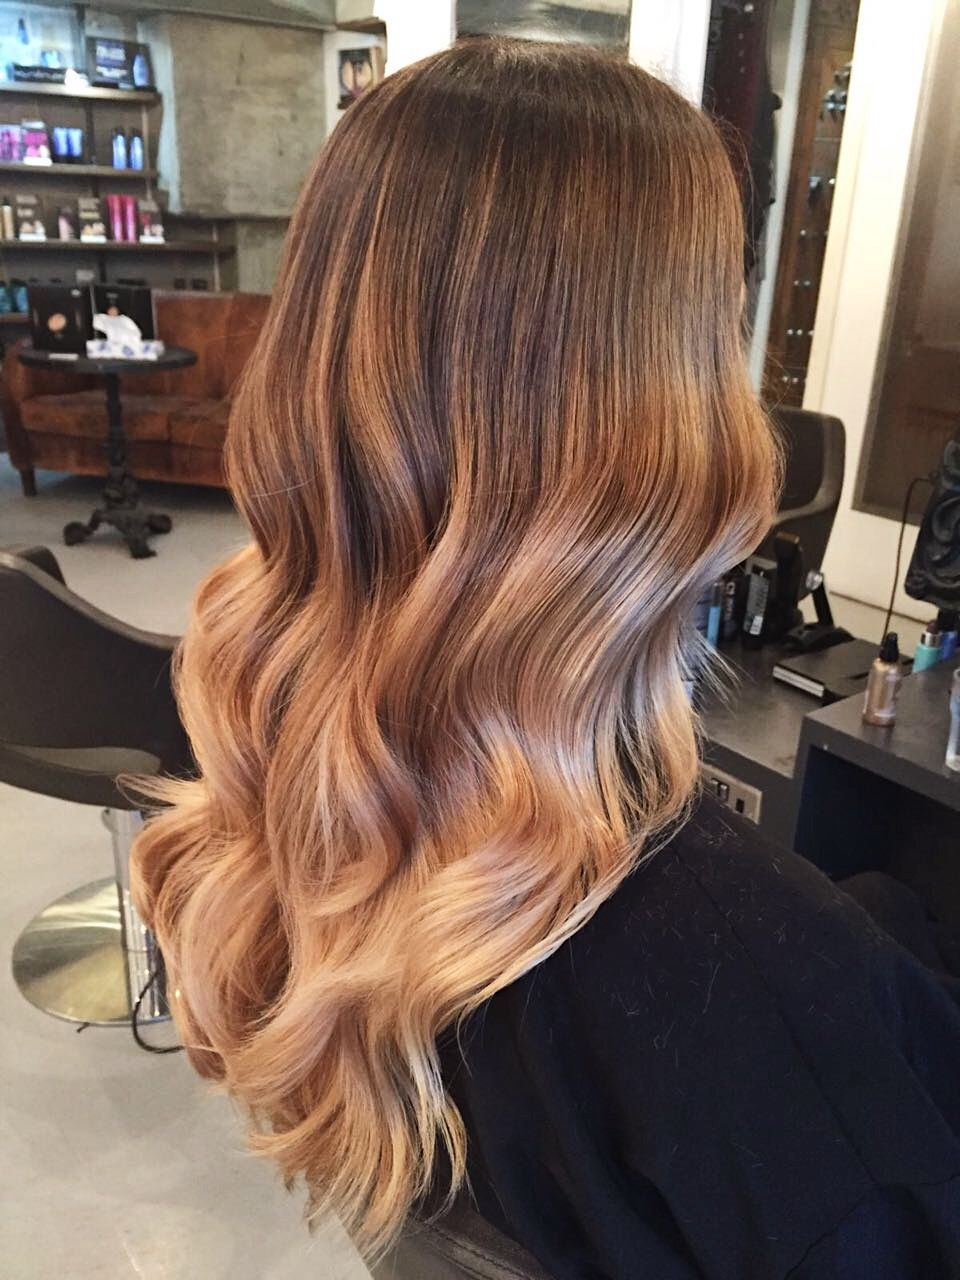 Balayage The natural looking Highlights in 2020